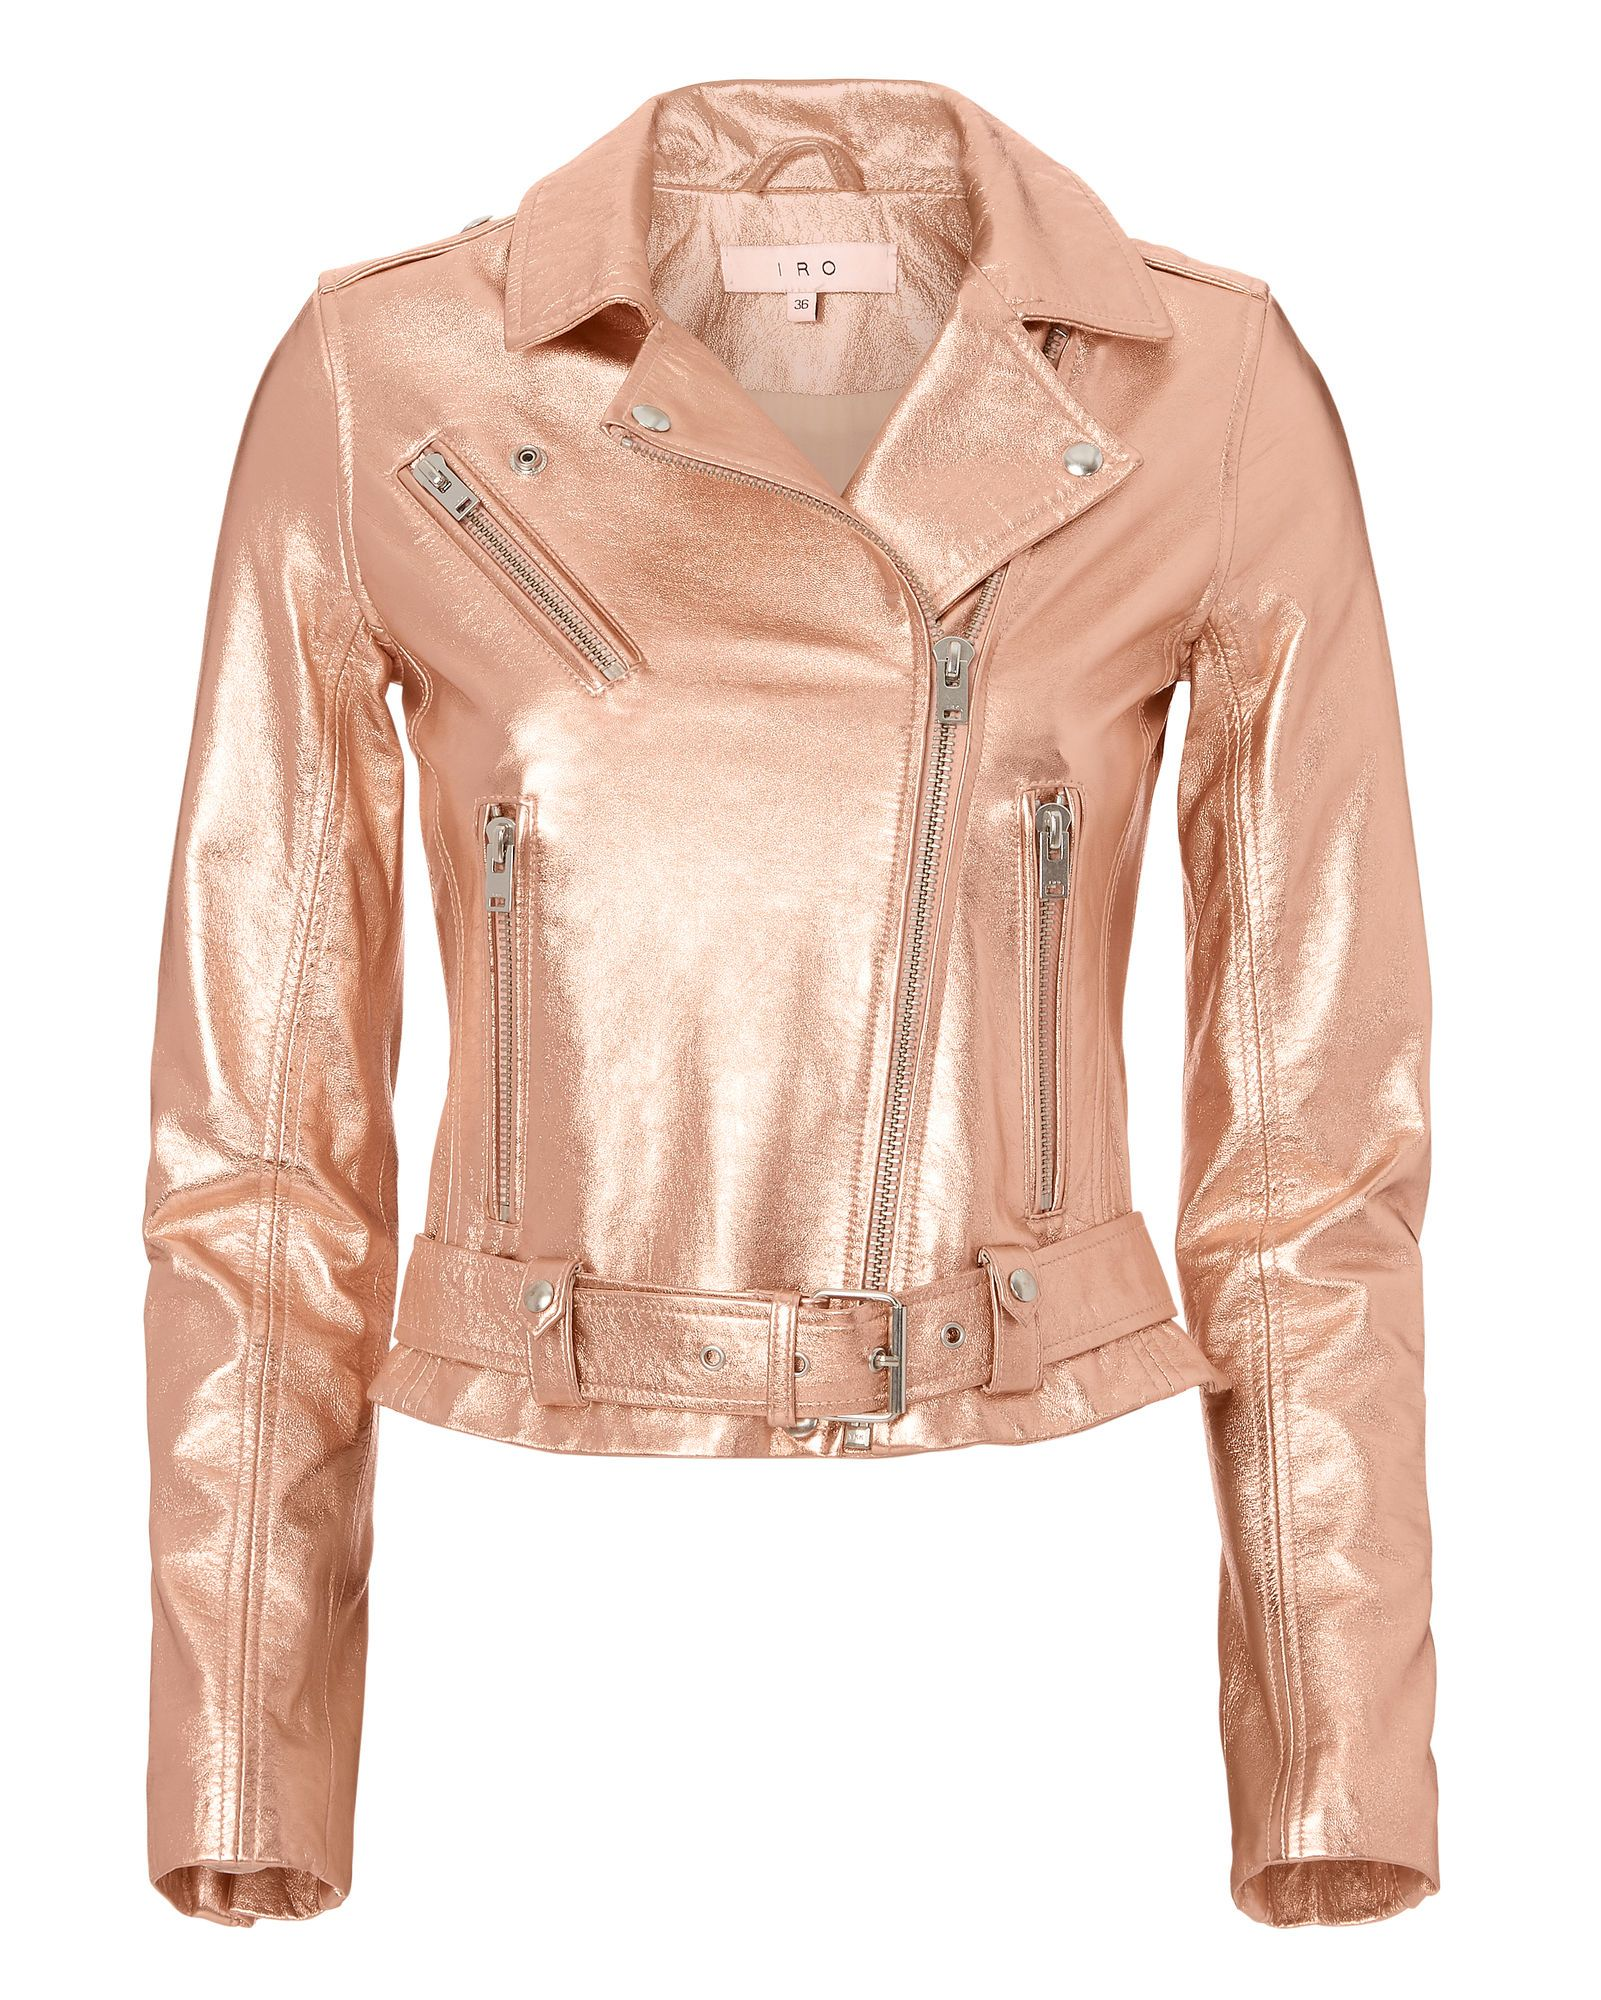 15cecf7f3dec5 New Designer Clothing for Women. Rough and delicate. Brooklyn Rose Gold  Leather Moto Jacket